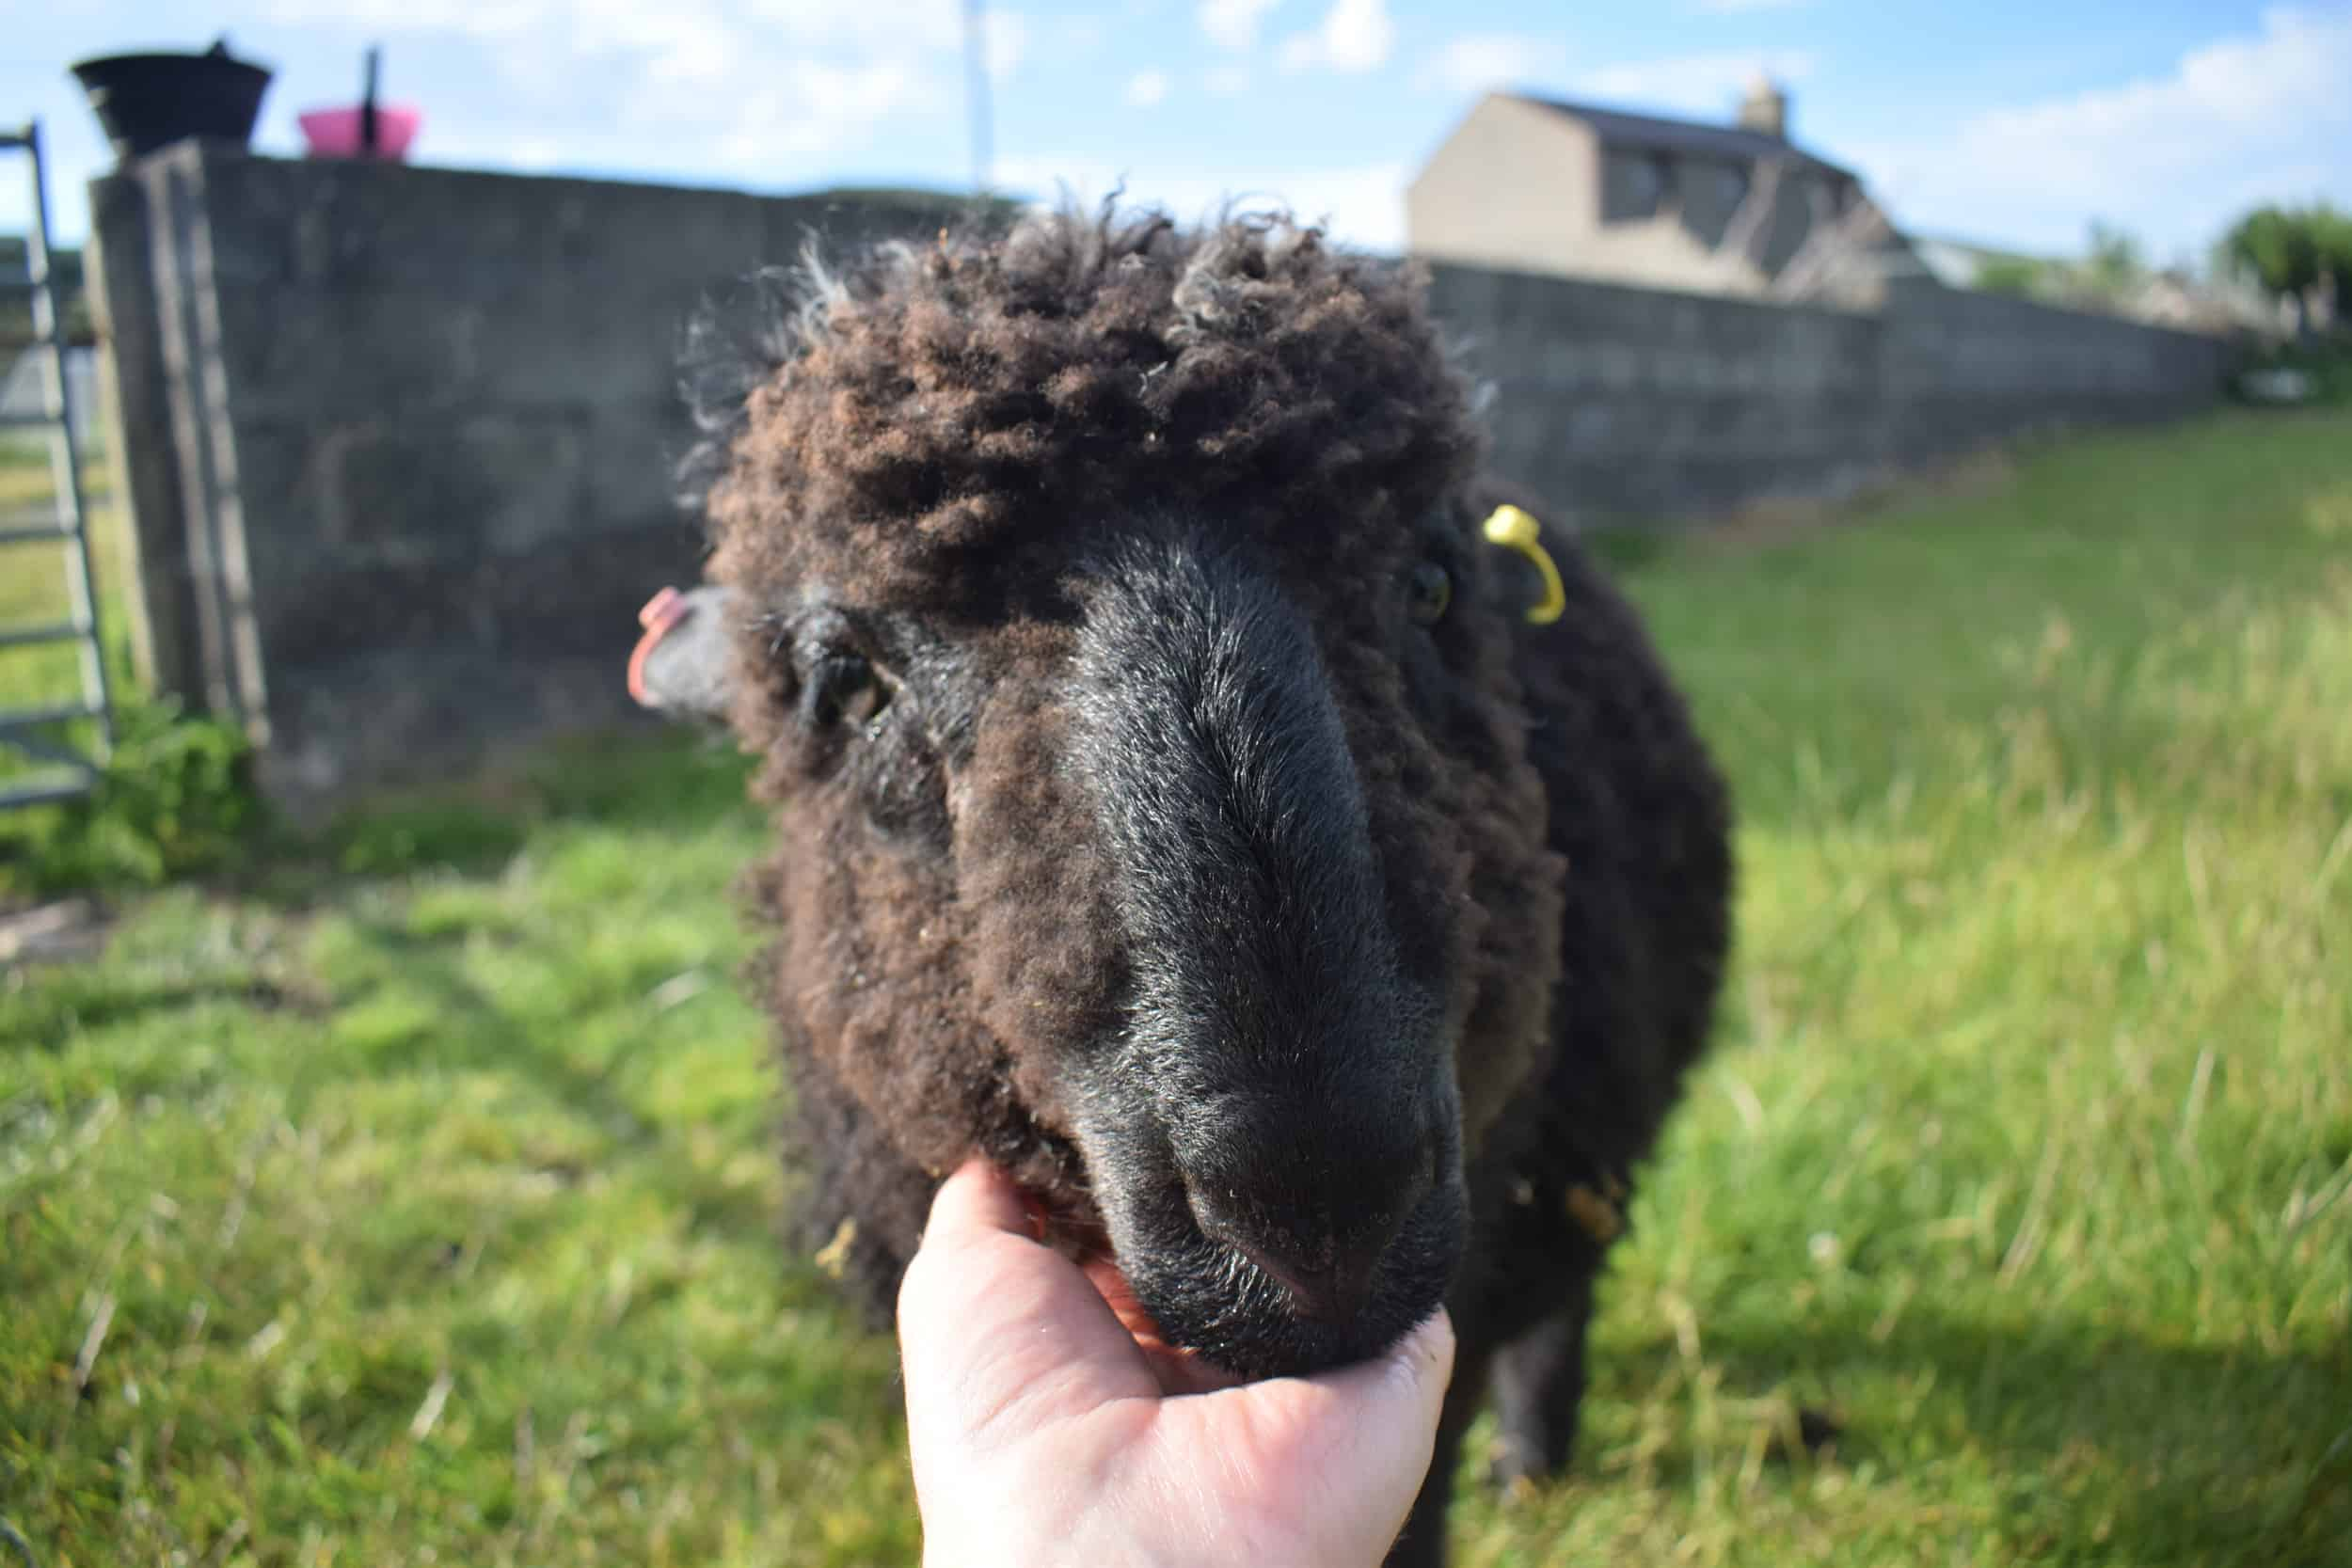 Griffin patchwork sheep pet black sheep lamb valais spitti blacknose cross bfl blue face leicester ram lamb black